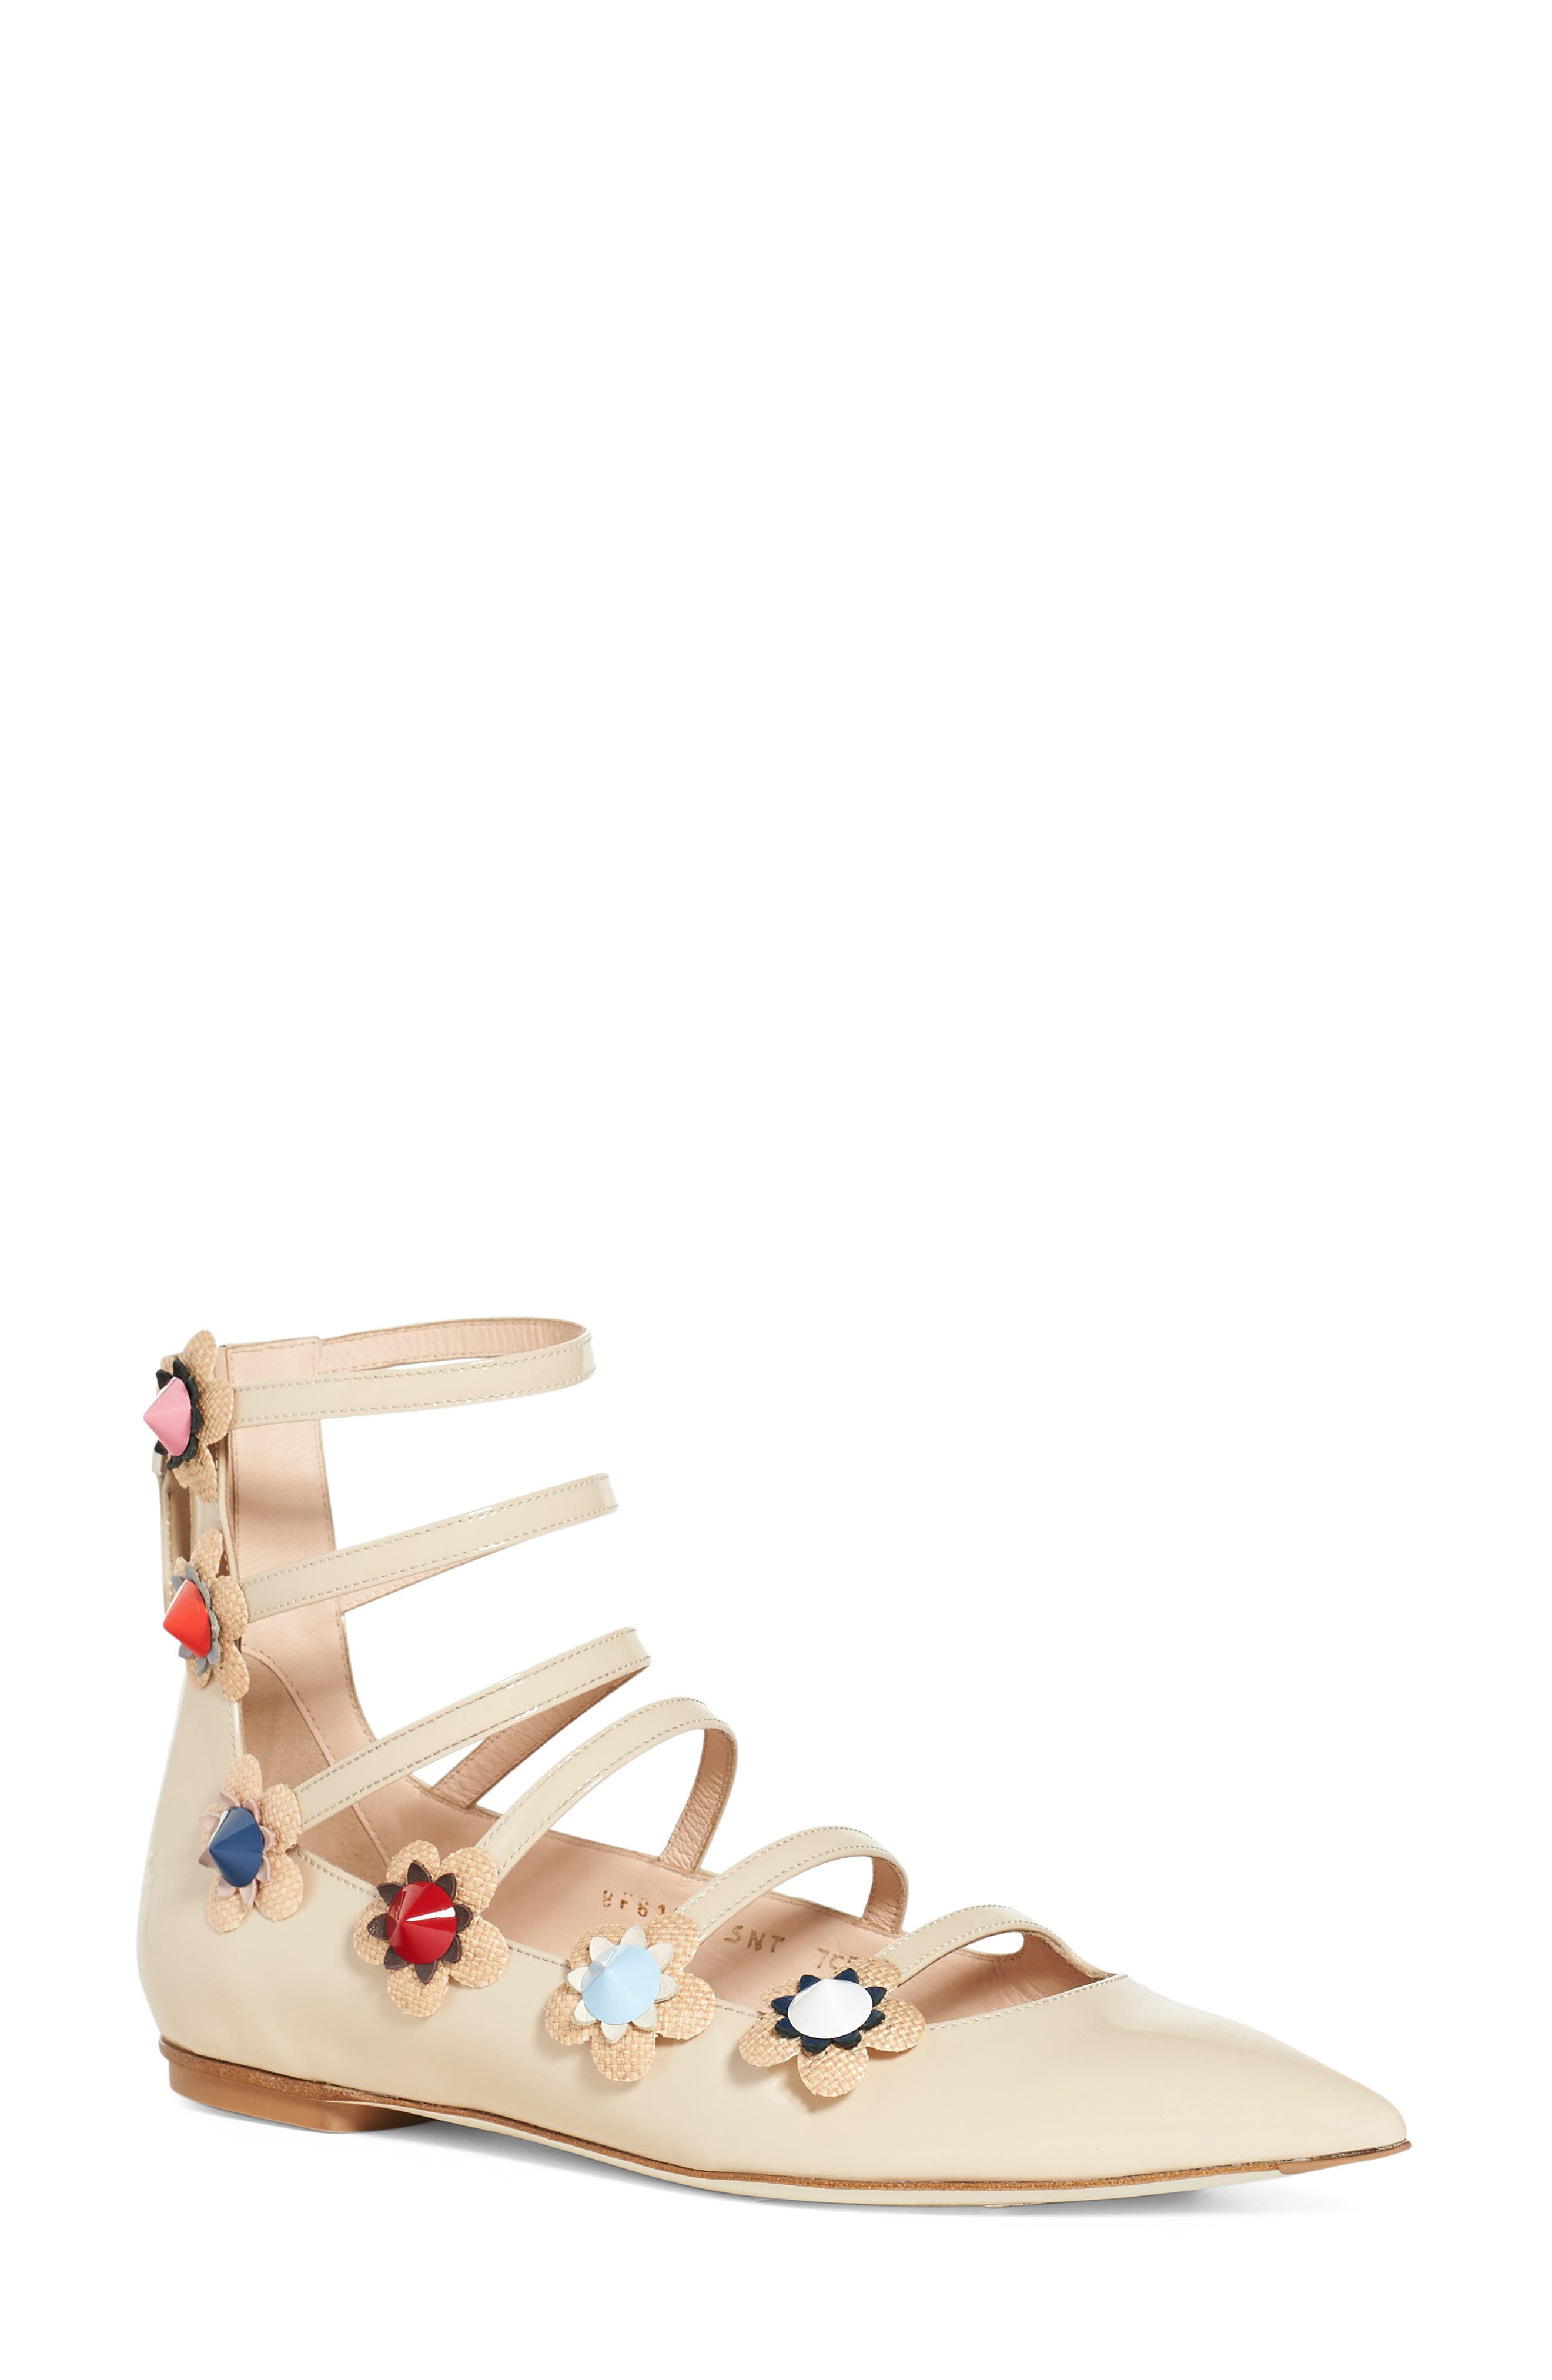 'Flowerland' Strappy Flat, Main, color, 250